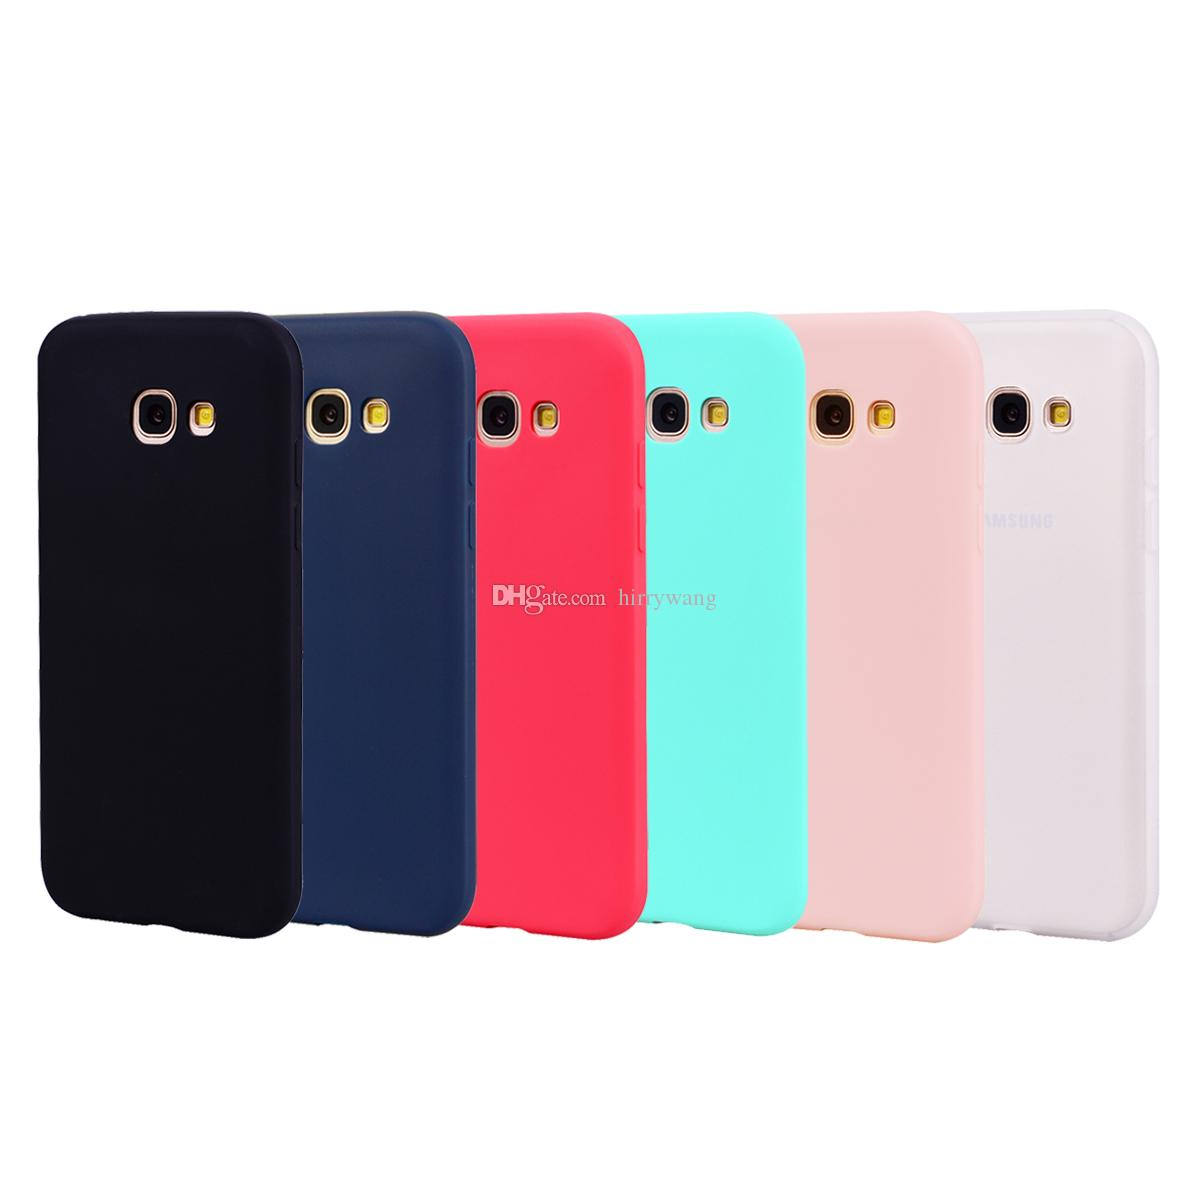 factory authentic c0db7 392c2 TPU Soft Silicone Gel Candy Color Phone Case for Samsung Galaxy A3 2017,A5  2017, Note 8,A7 2017,A8 2018,A8 Plus